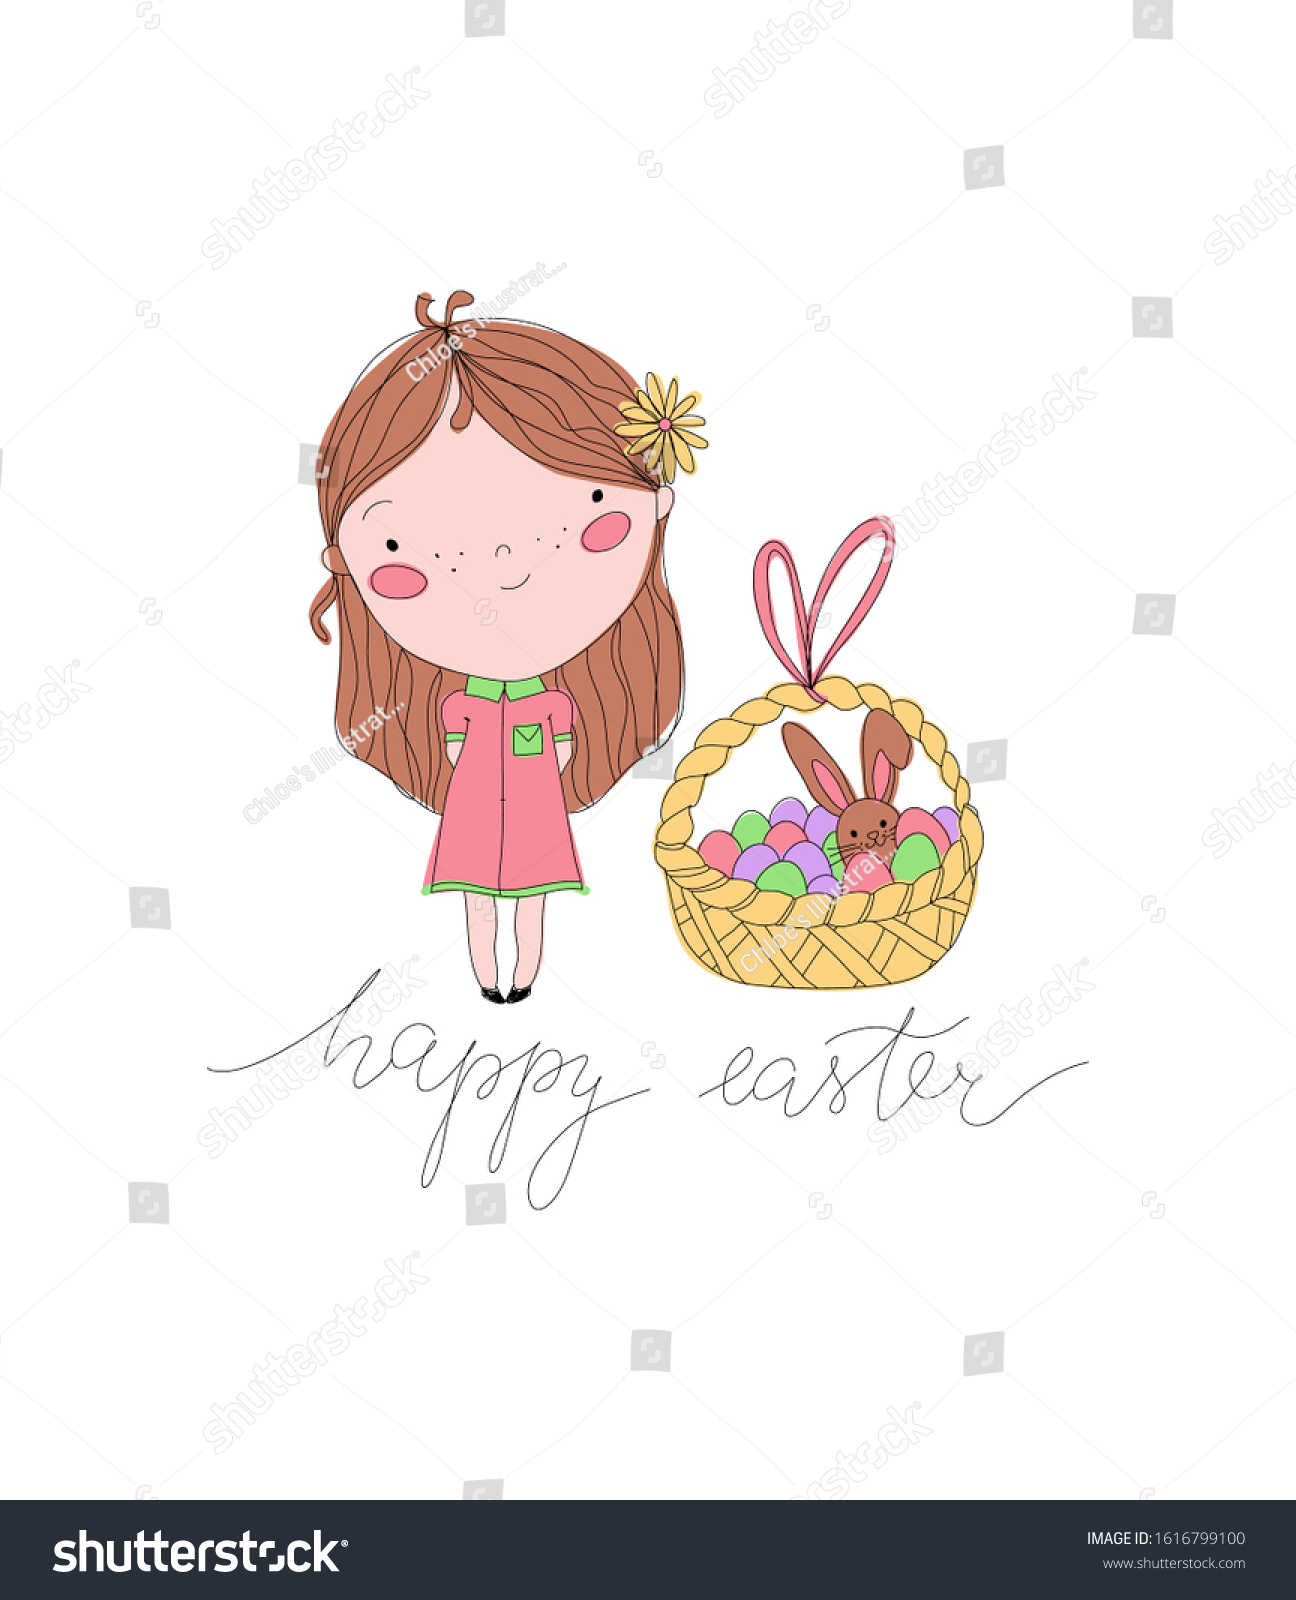 stock-vector-isolated-happy-easter-vecto